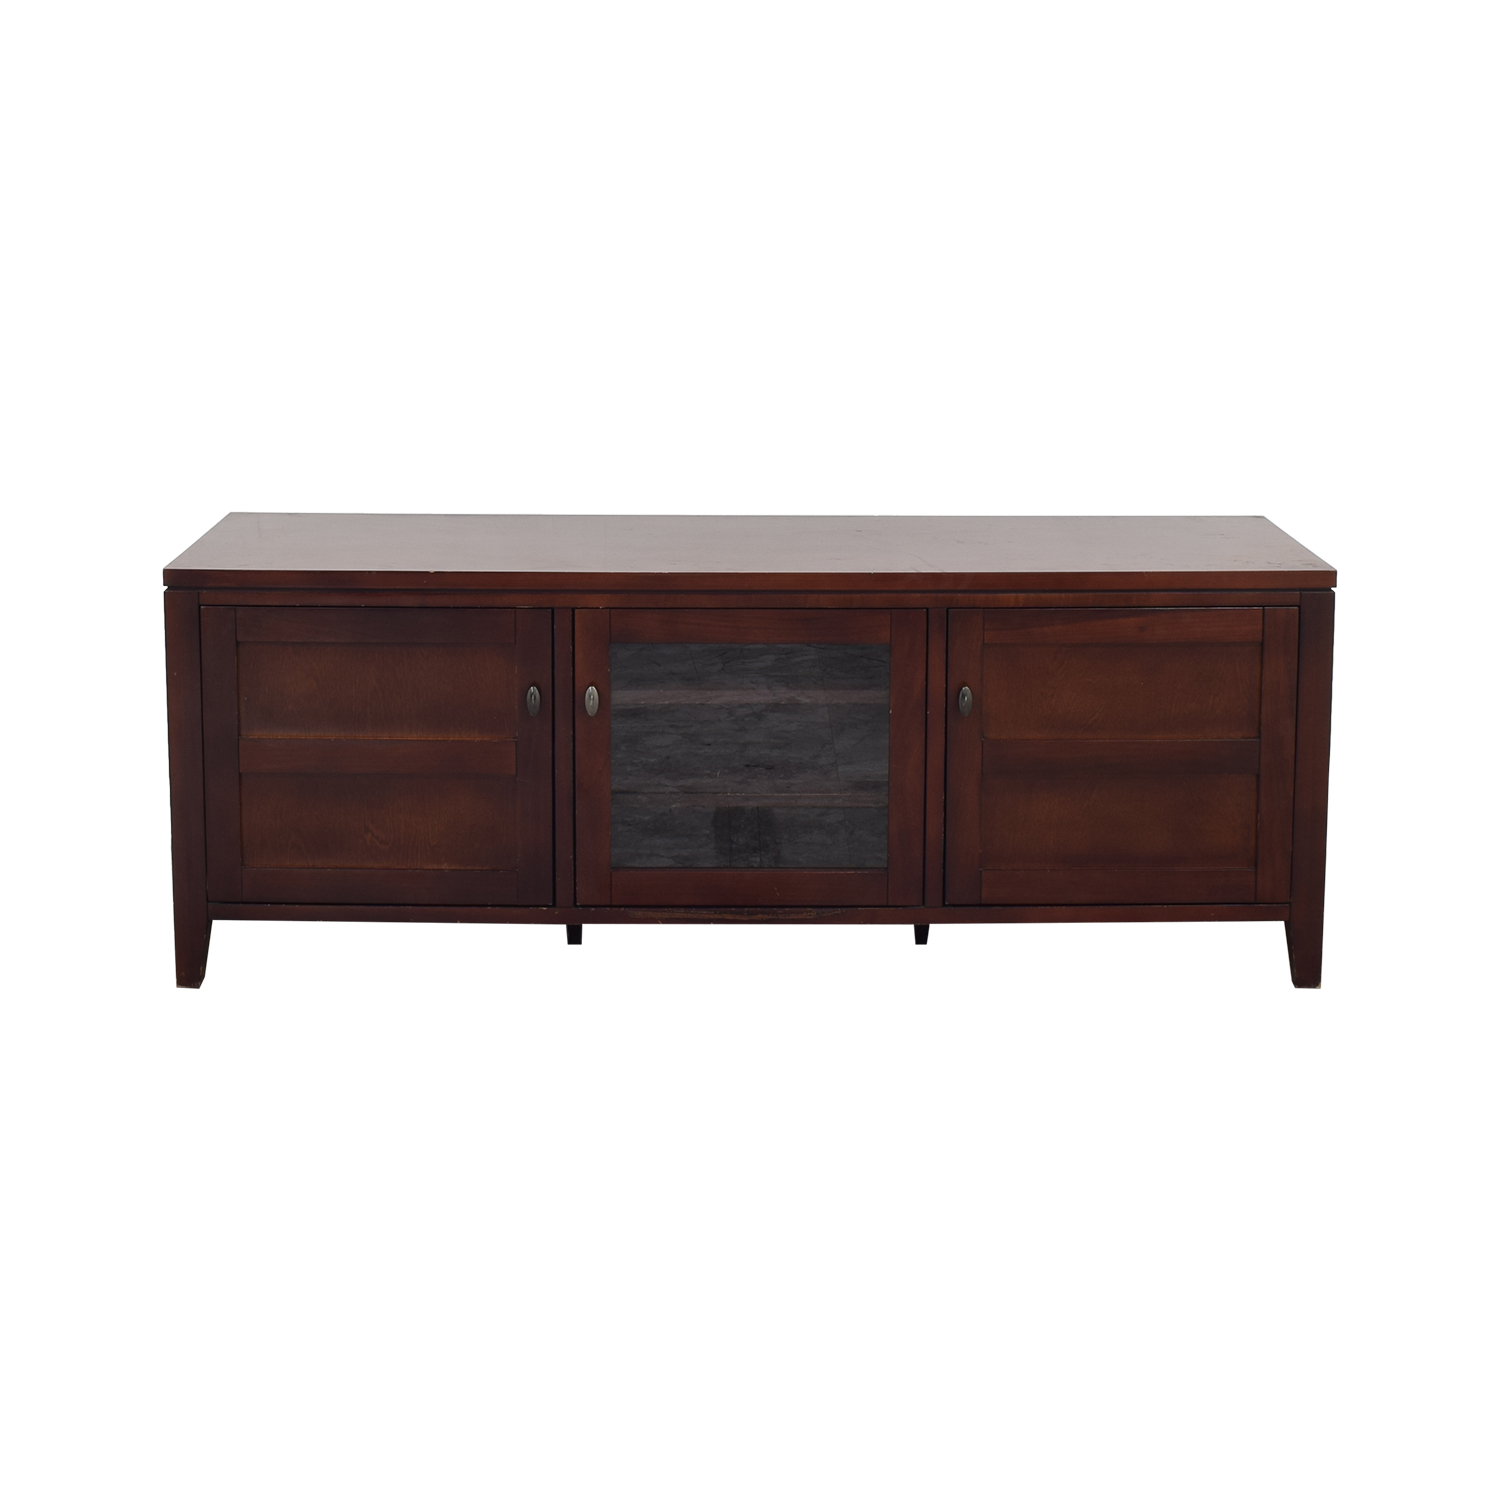 buy Crate & Barrel Media Console with Cabinets Crate & Barrel